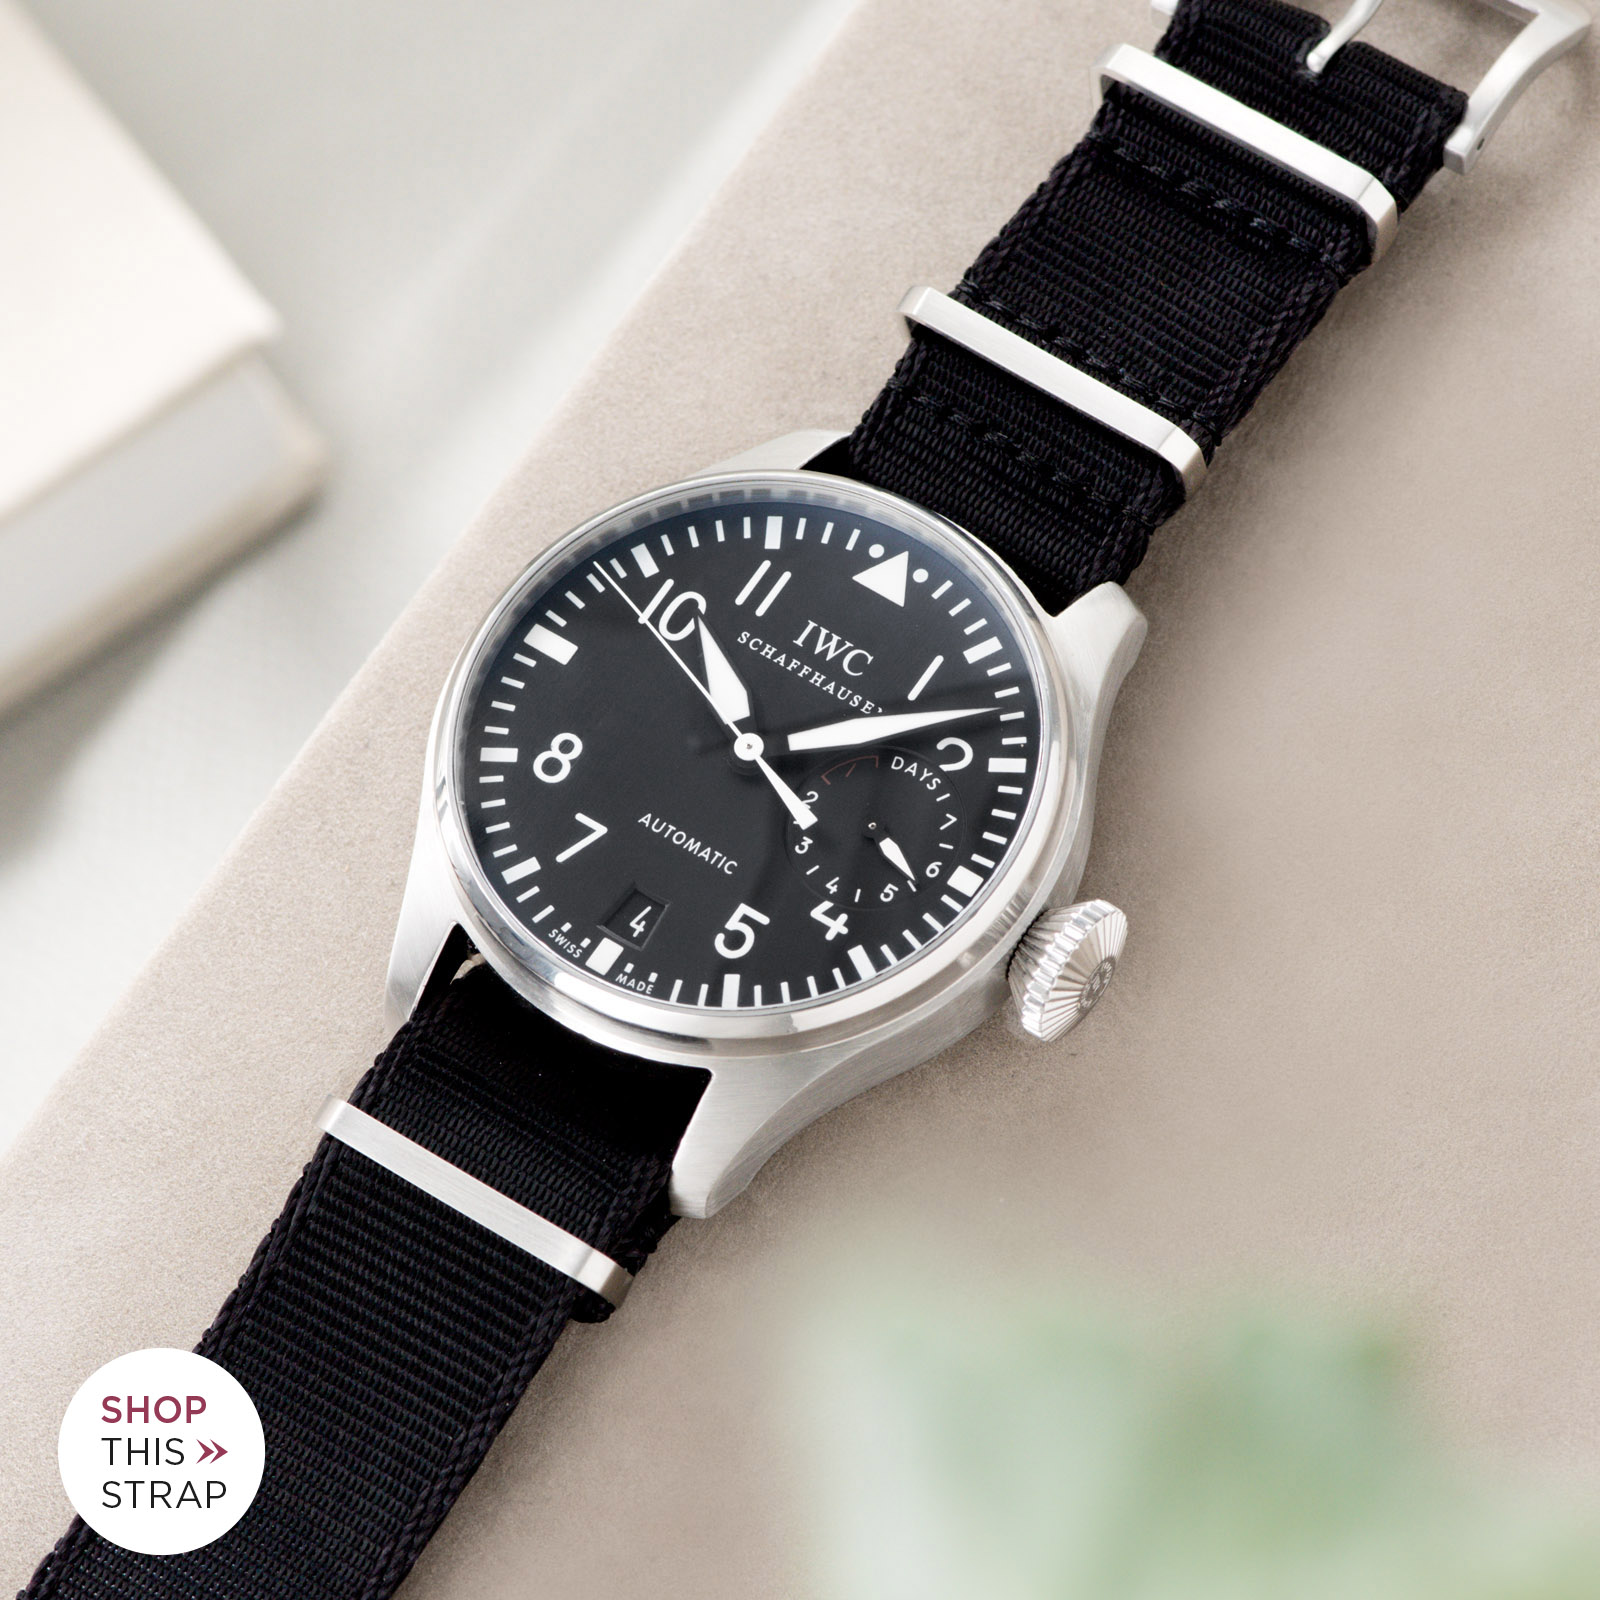 Bulang and Sons_Strap Guide_IWC Big Pilot ref IW5004_Deluxe Nylon Nato Watch Strap Pure Black